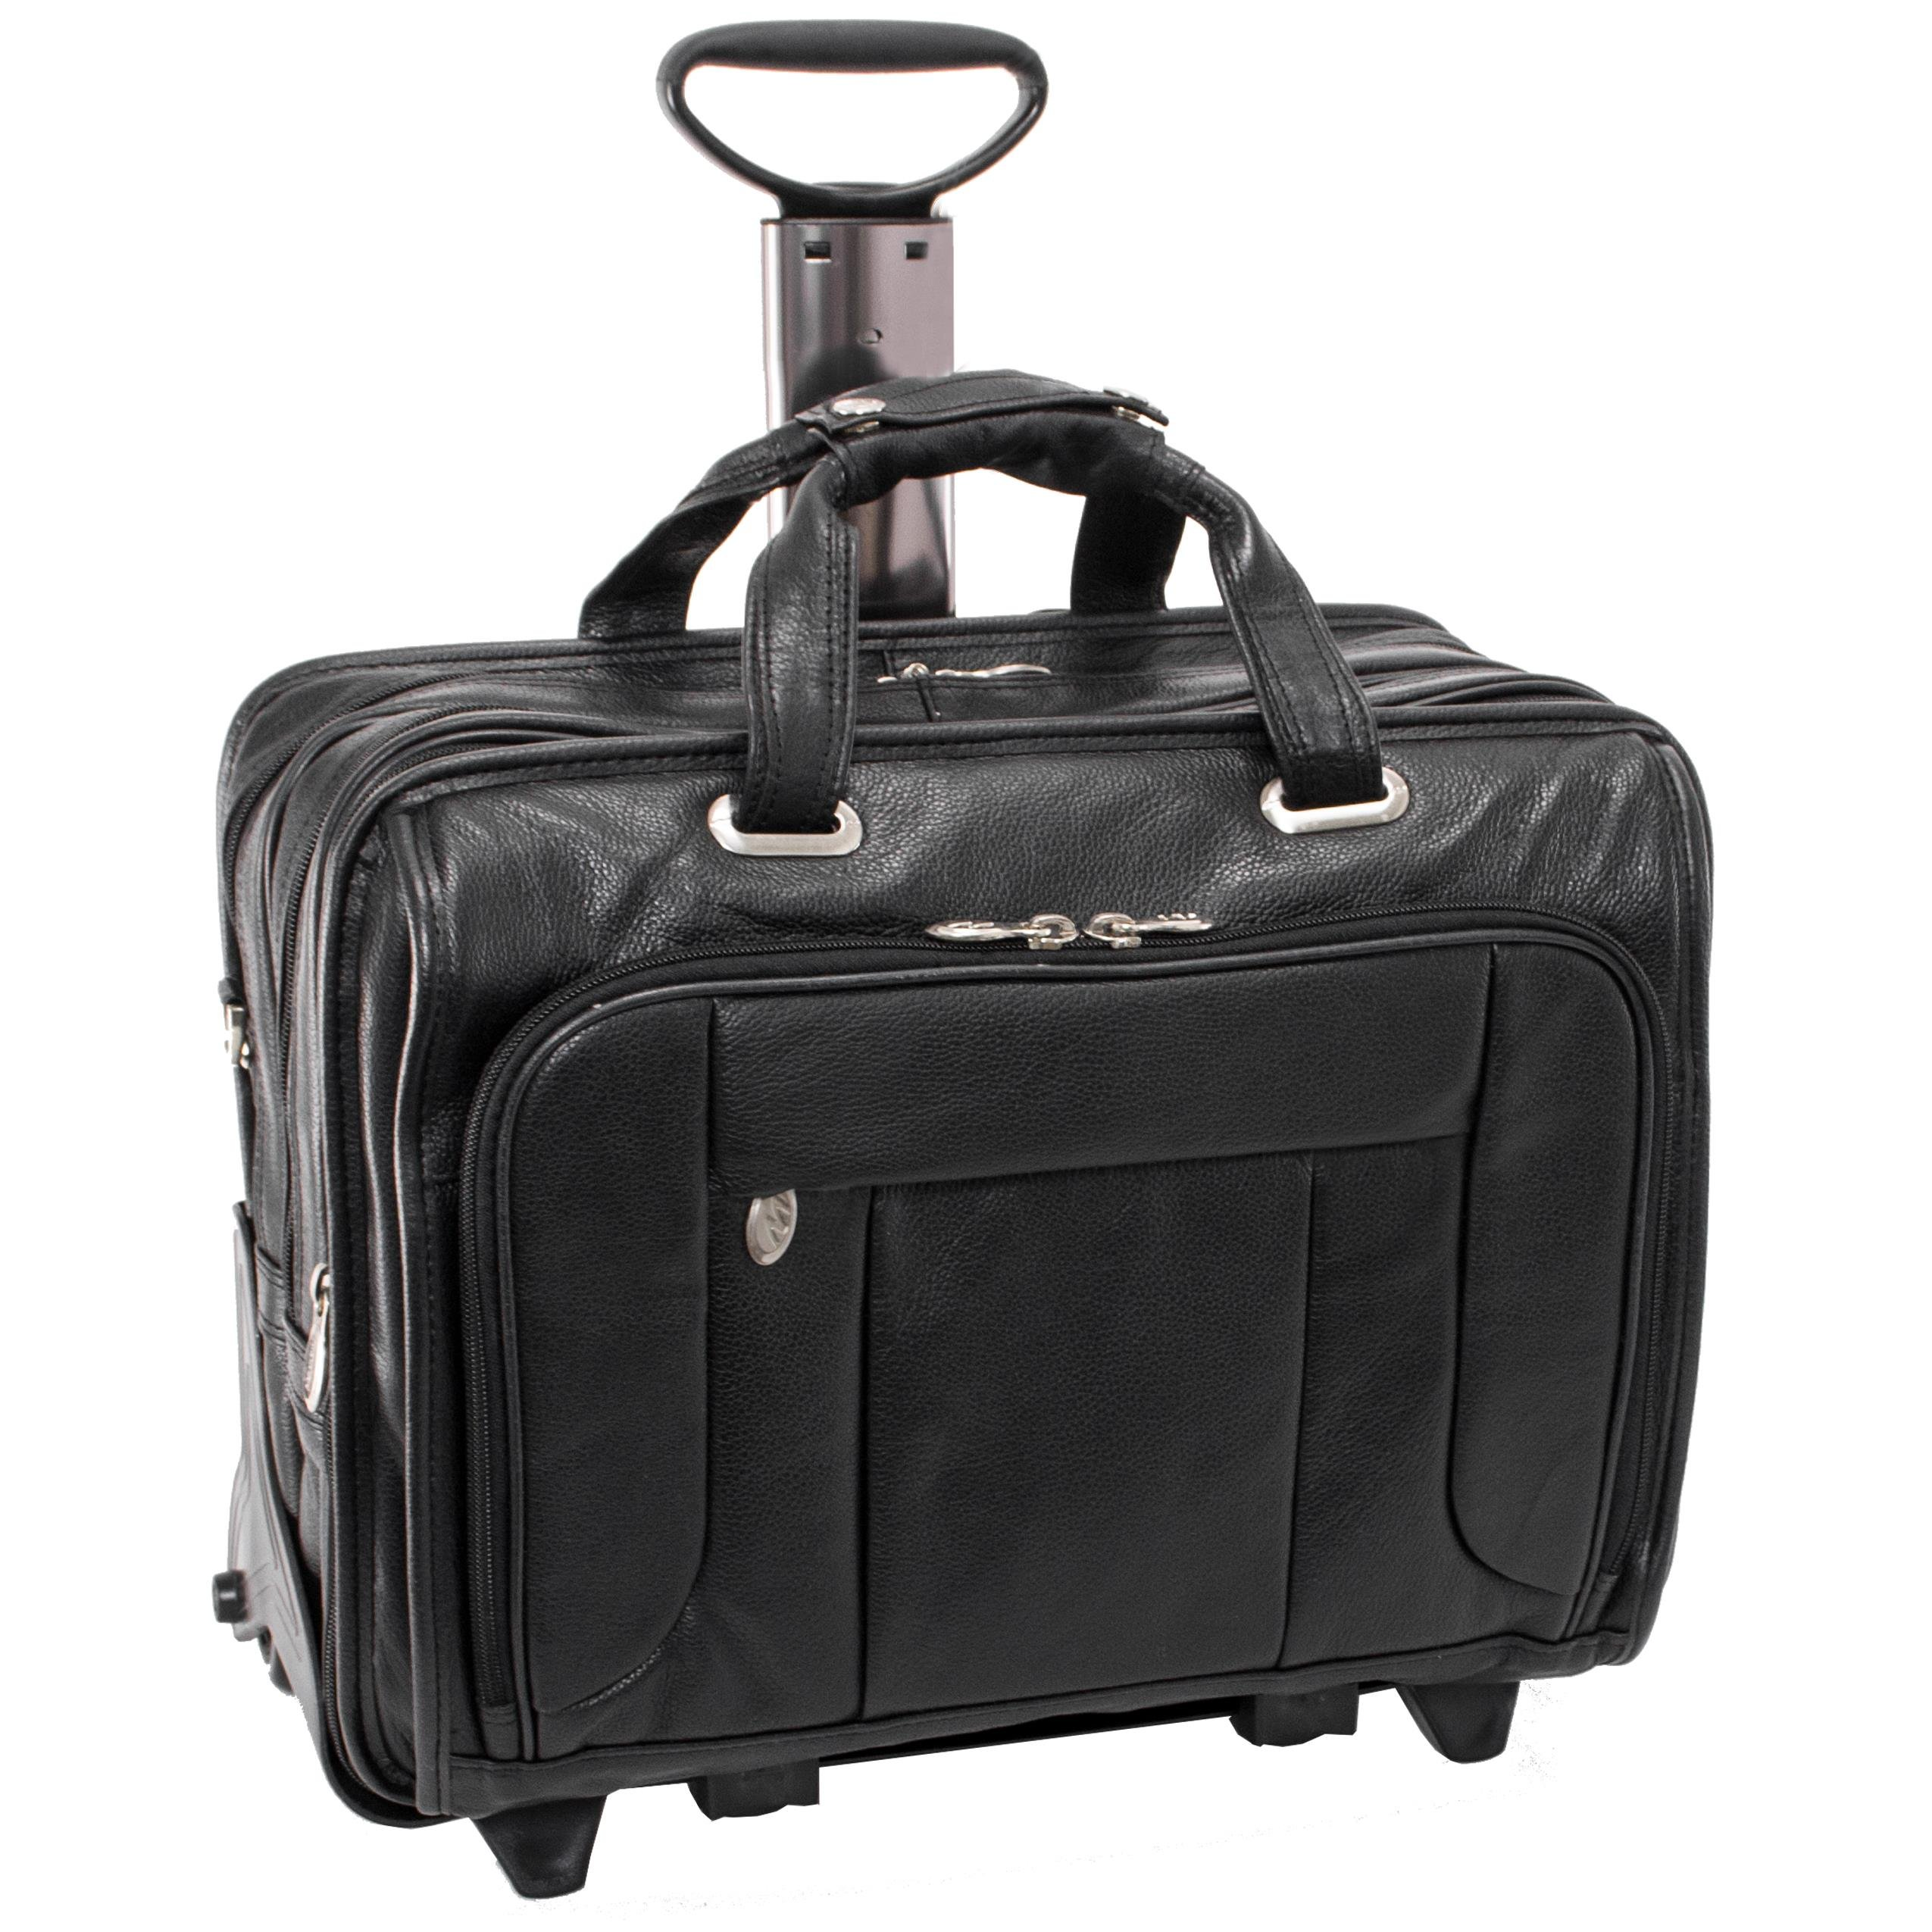 Mcklein USA 15705 West Town, 156'' Leather Checkpoint friendly Wheeled Laptop Case